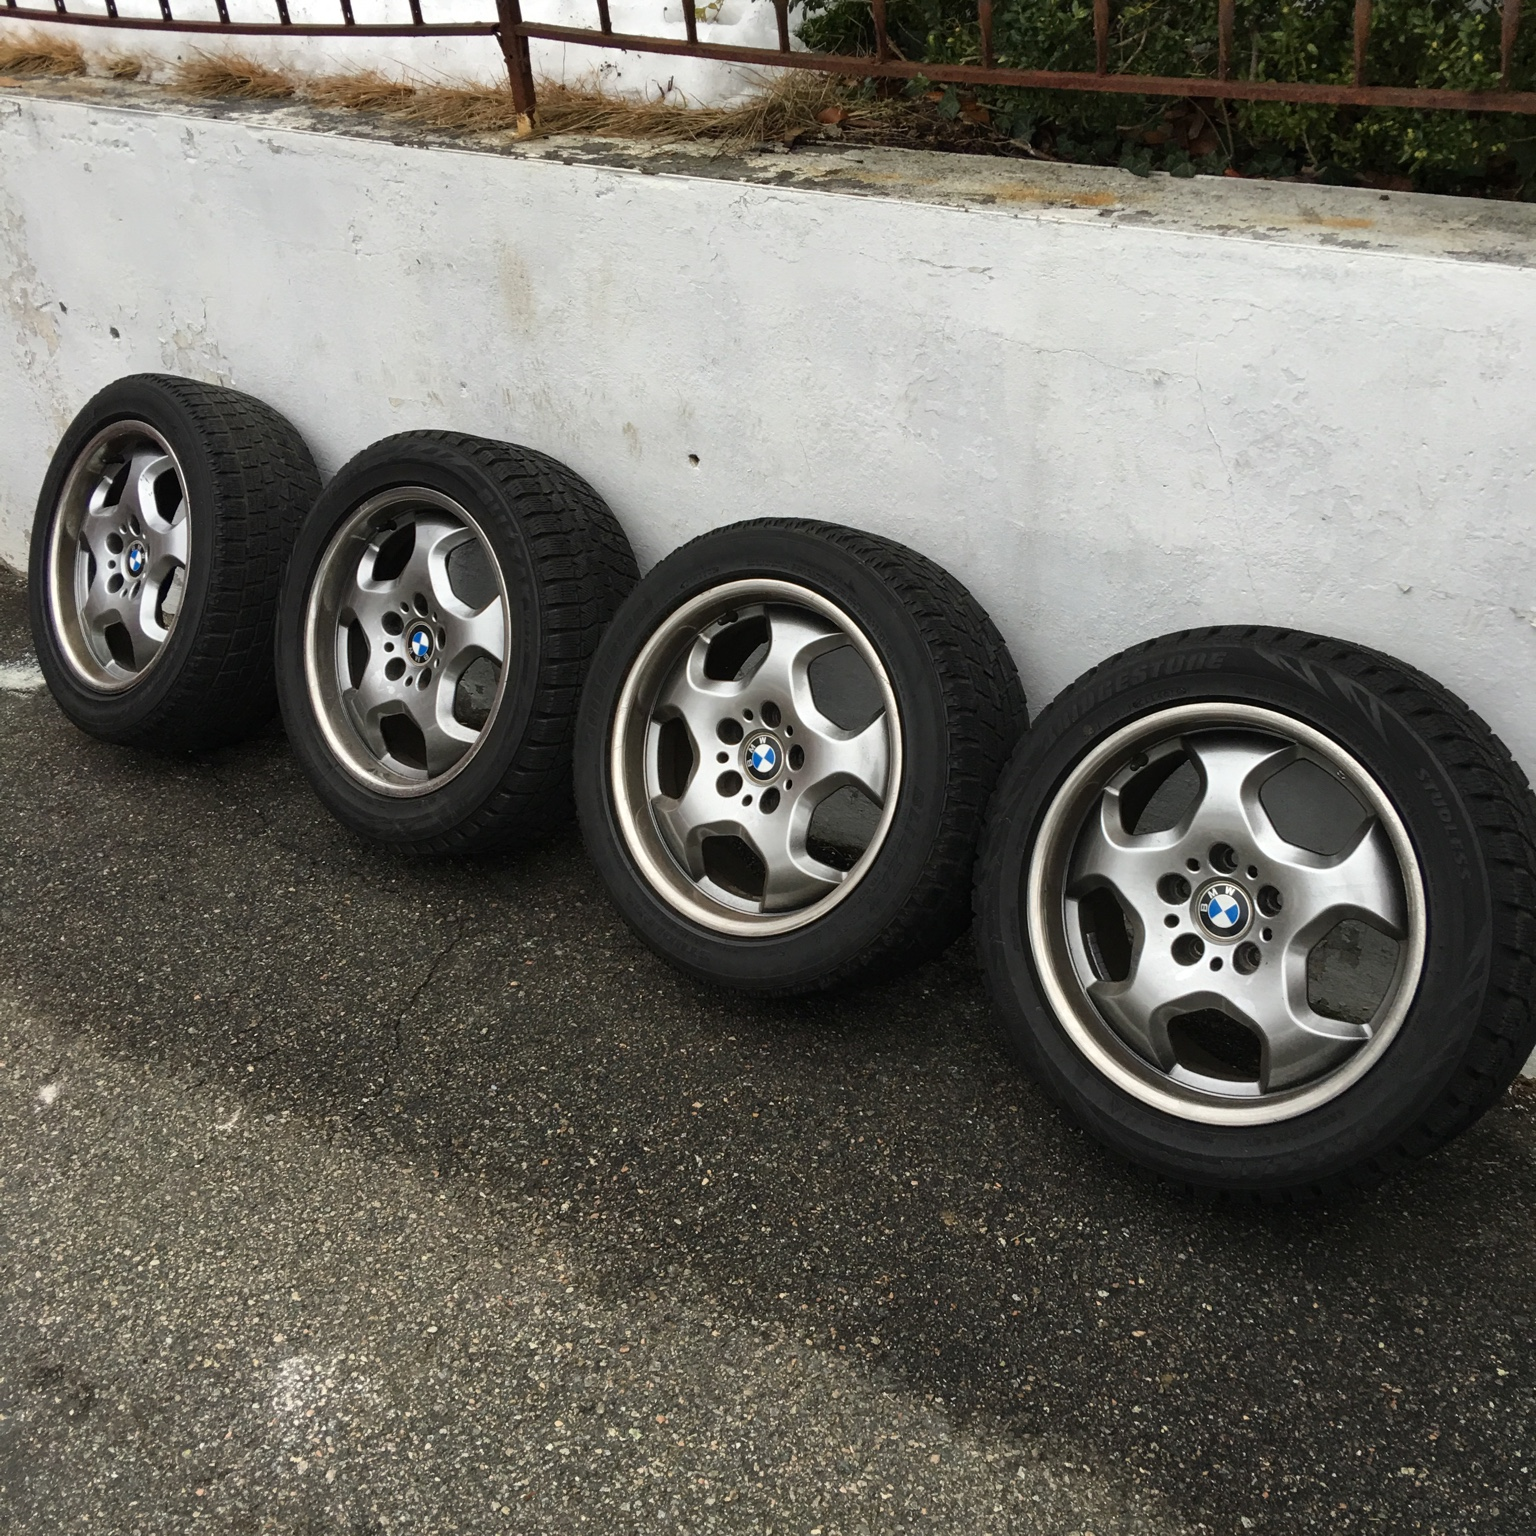 BMW E36 E46 M3 Contour Wheels